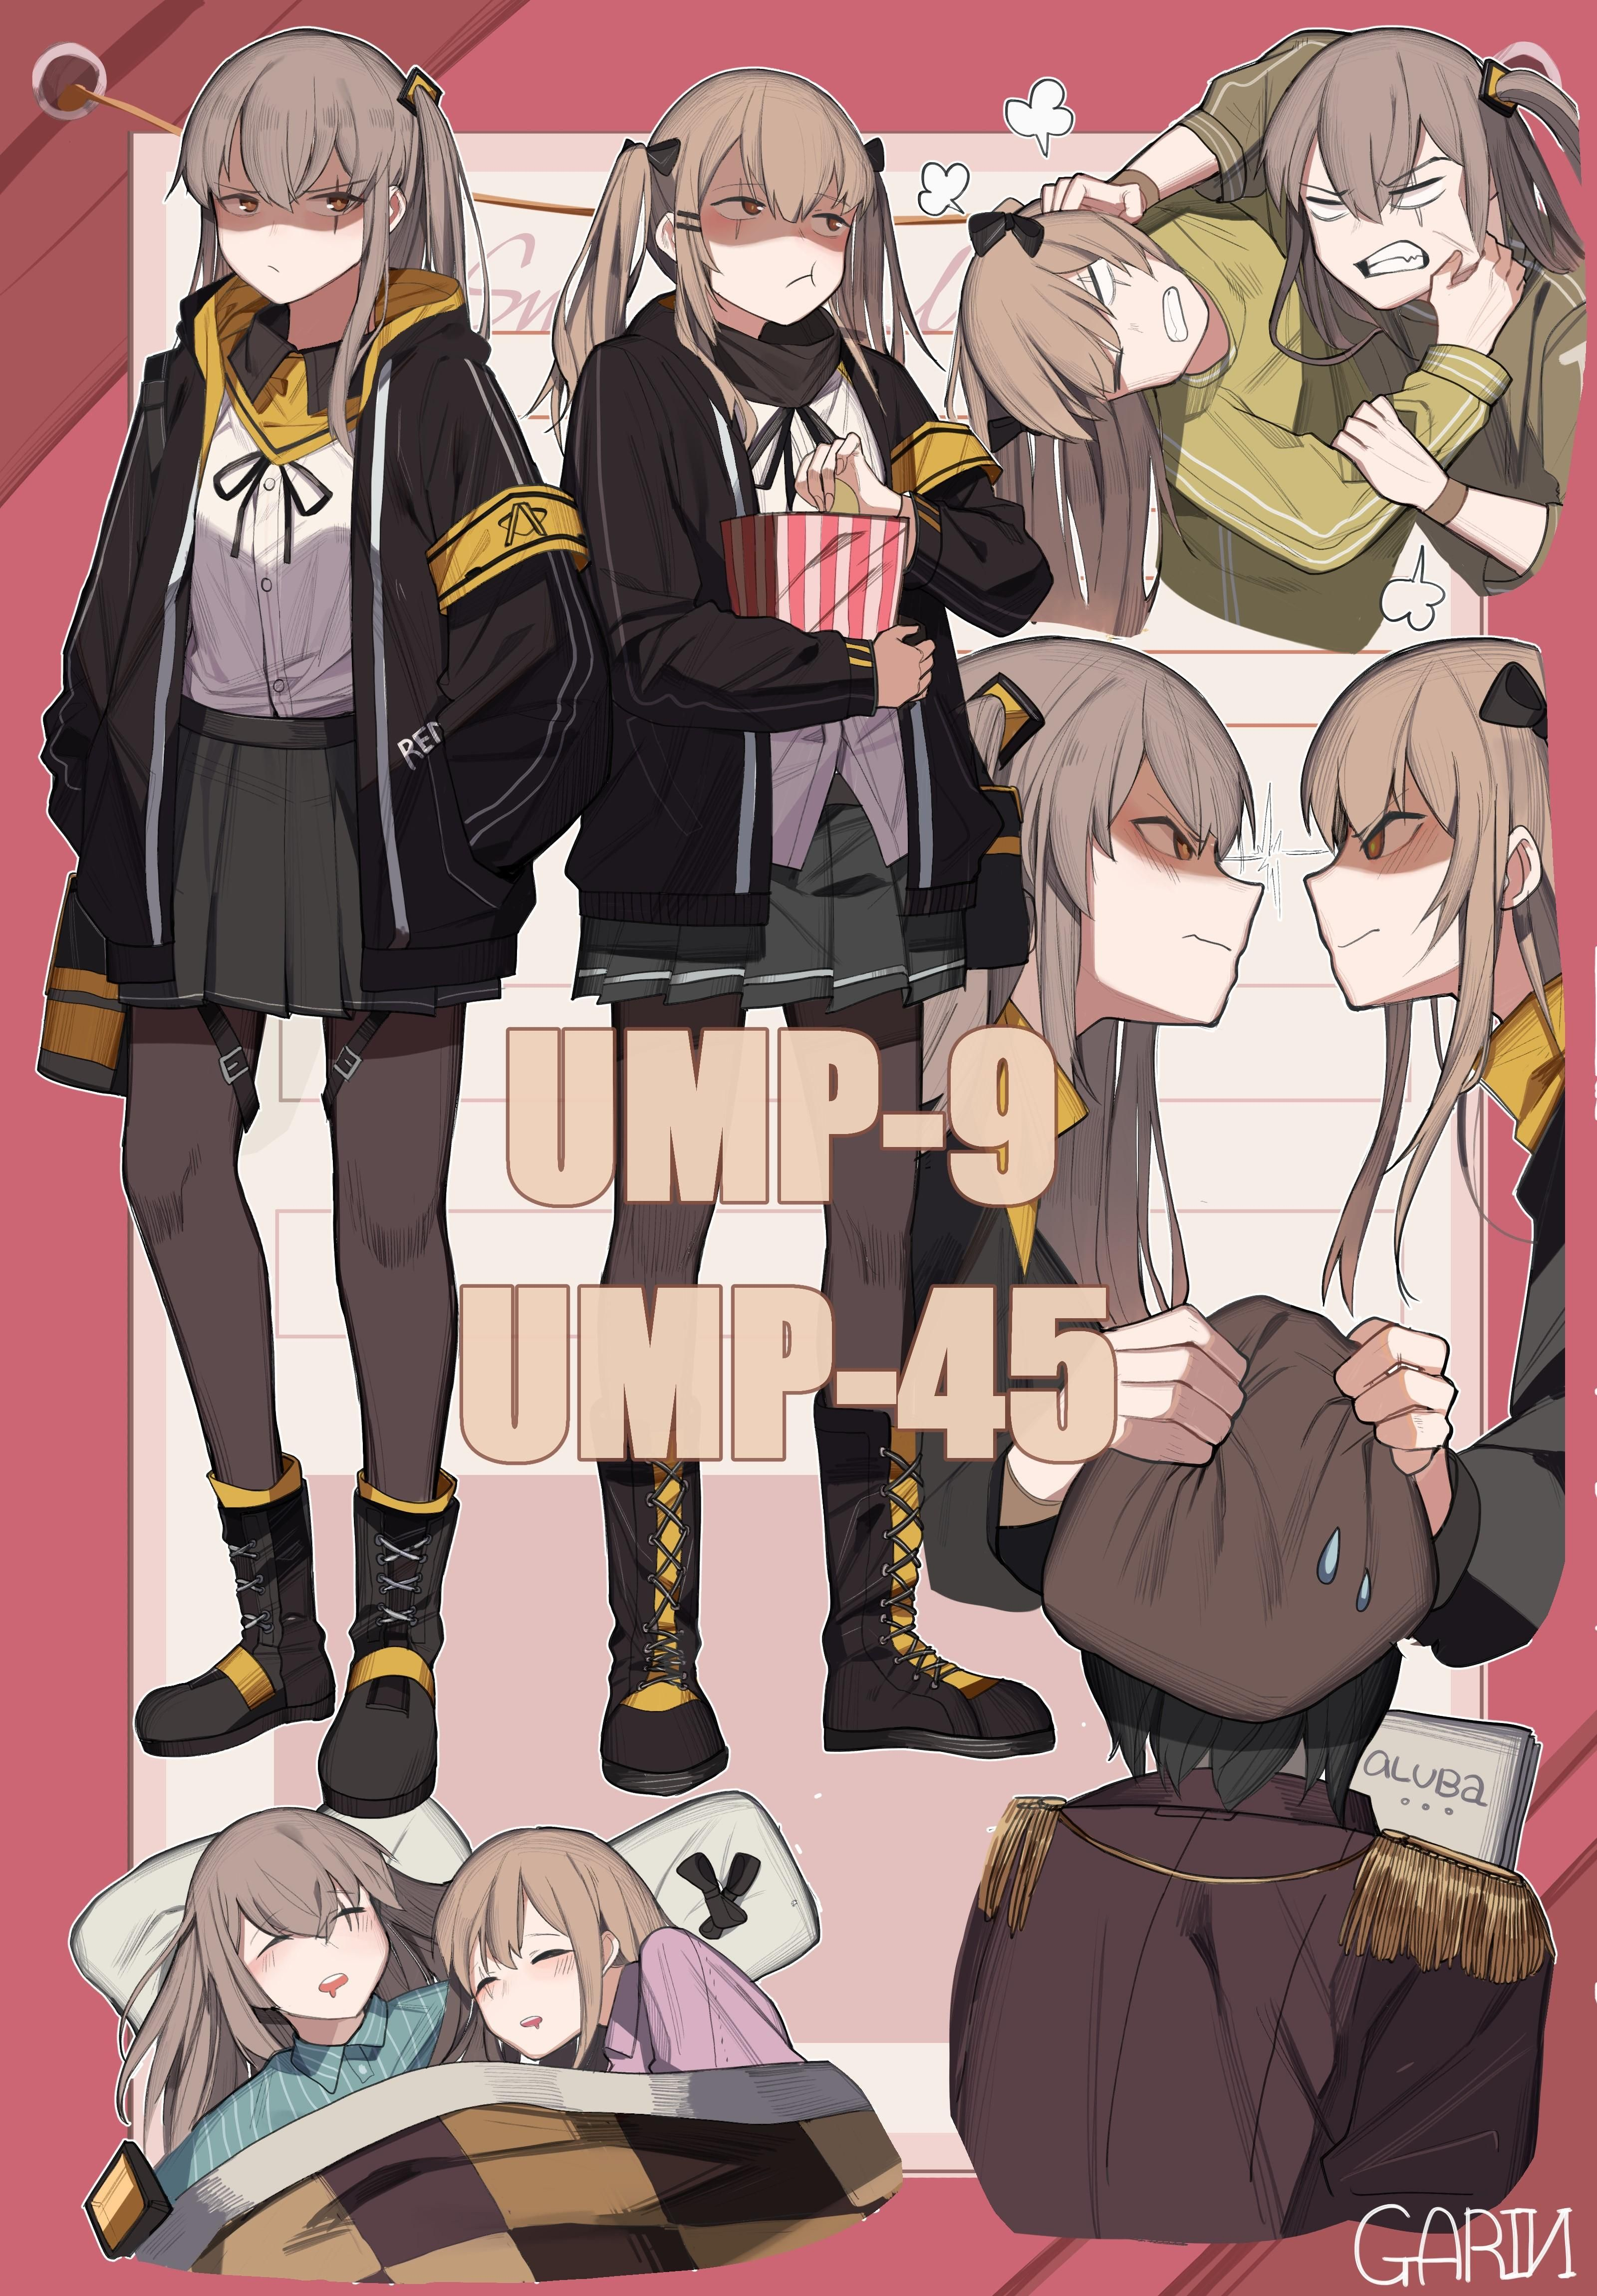 Upgrade by Andrew Lester Cyberpunk, Monster characters